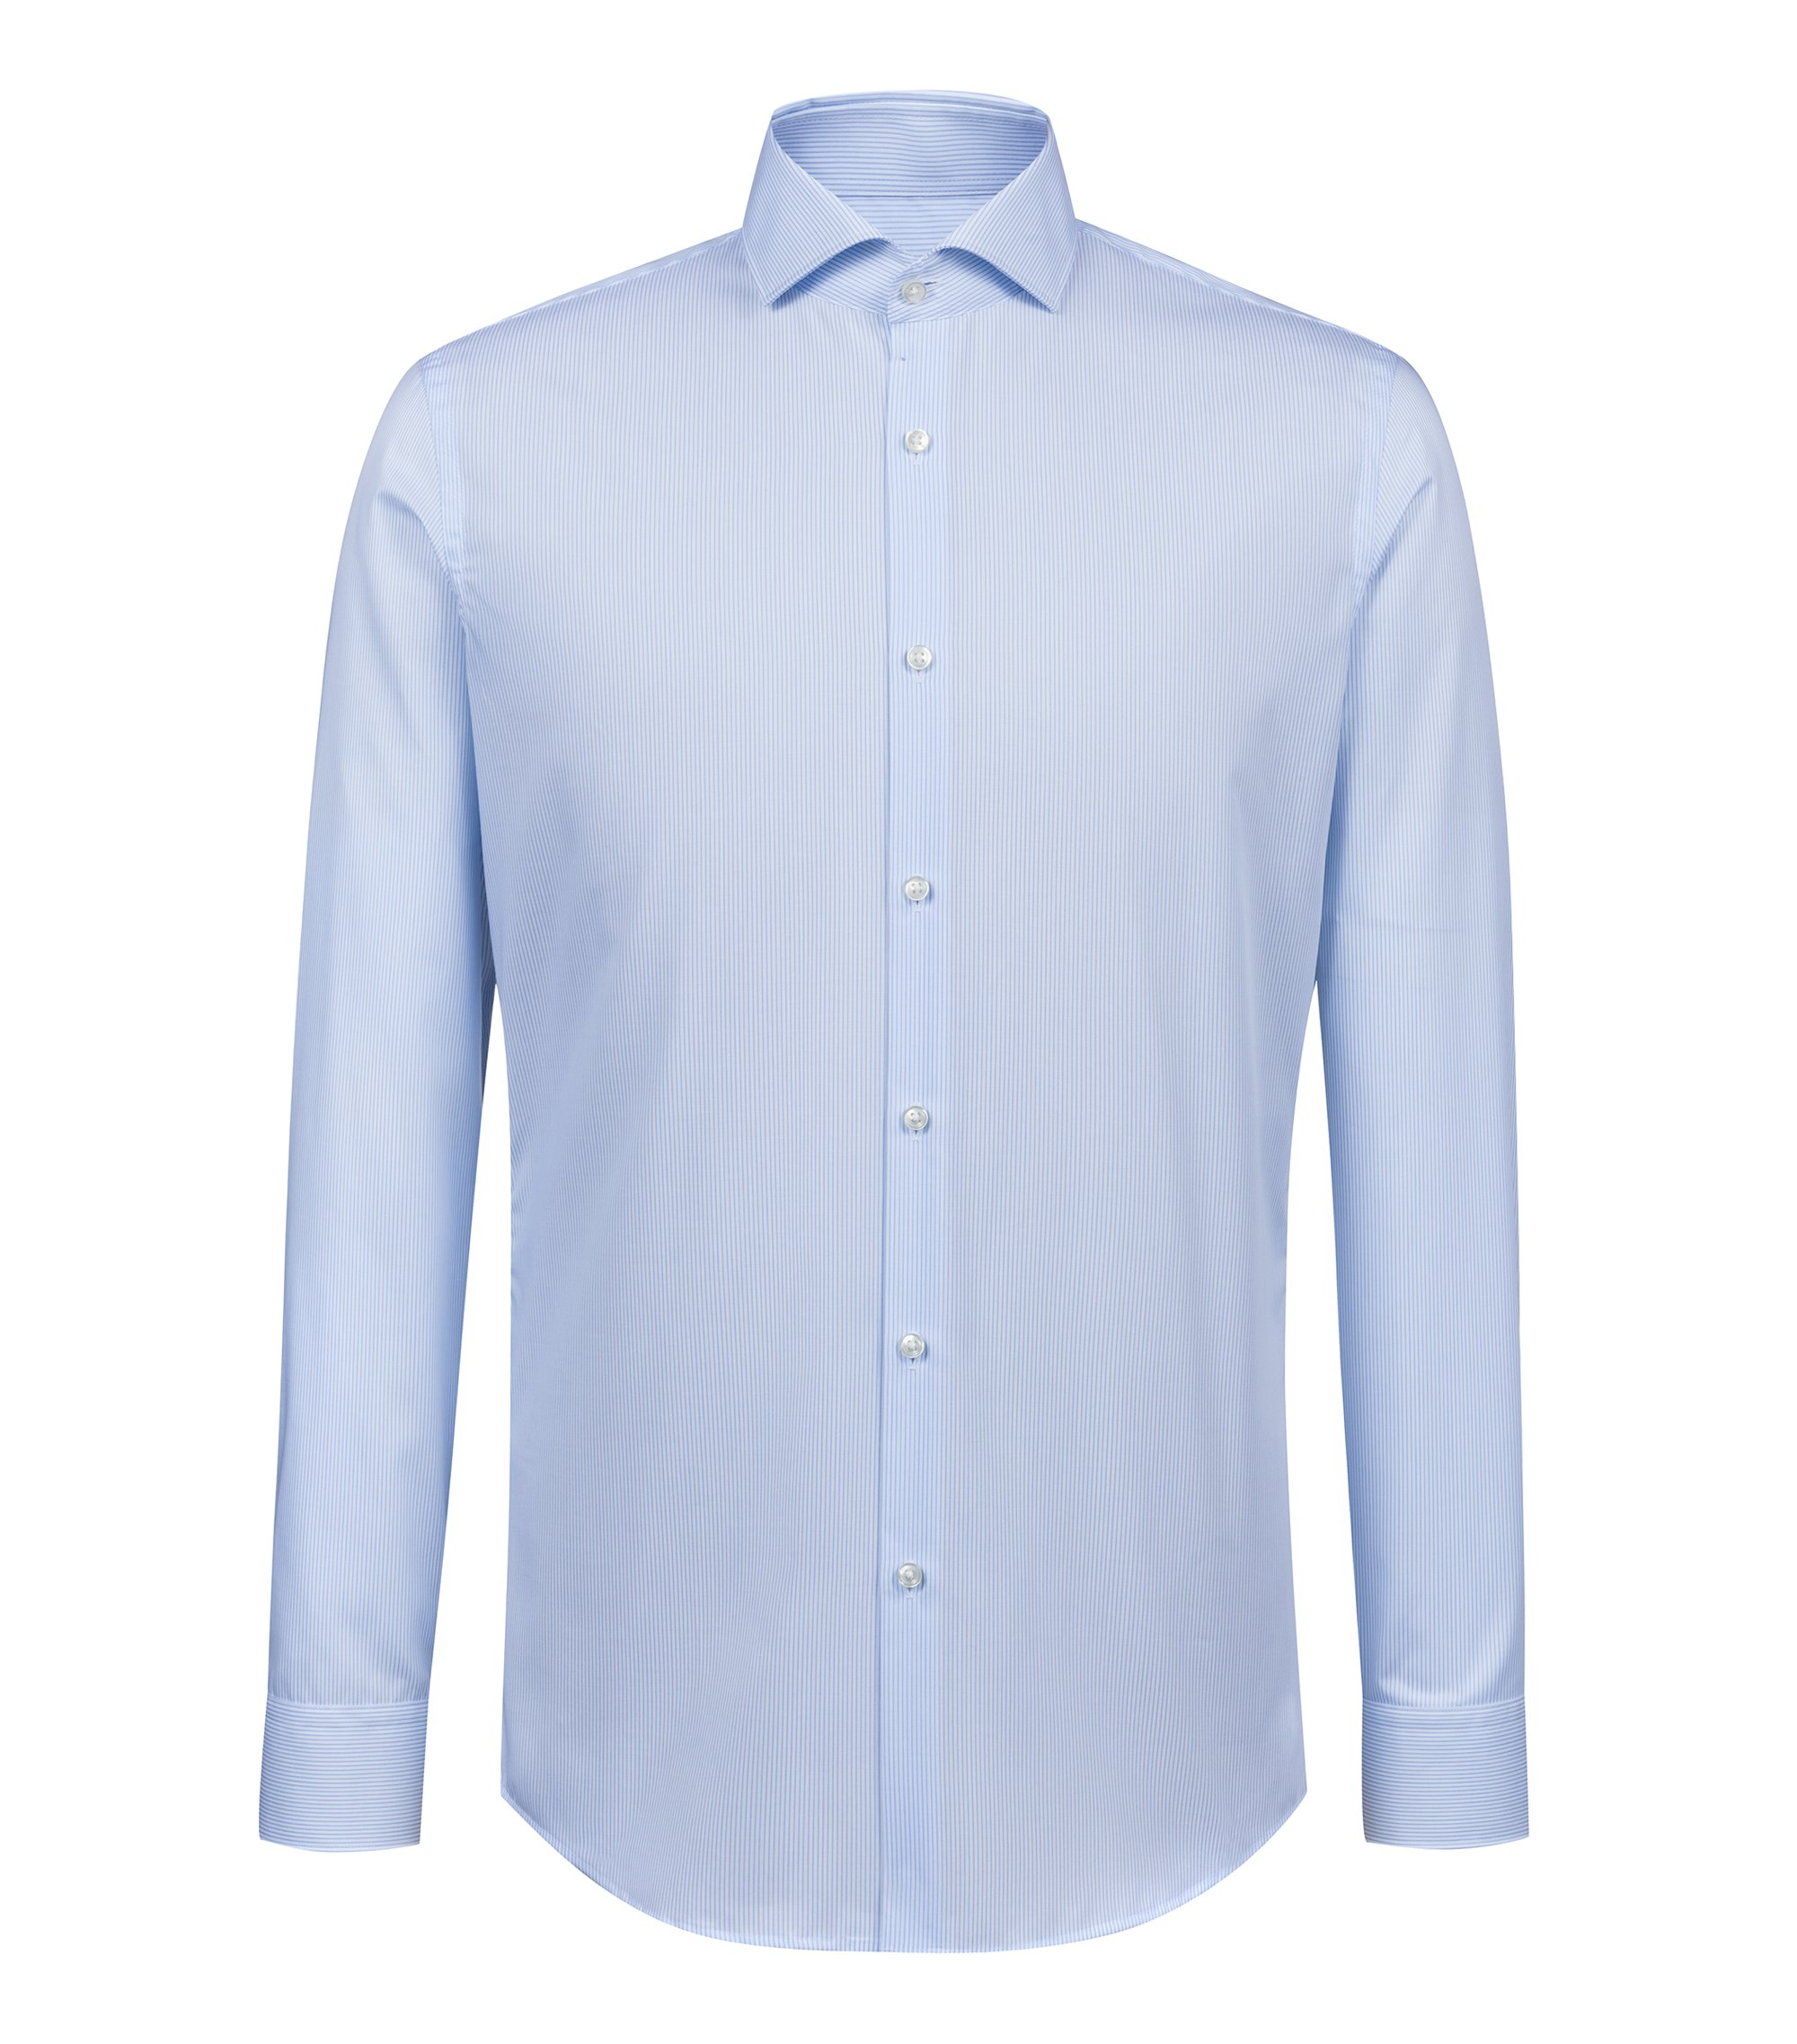 Slim-fit easy-iron shirt in striped cotton poplin, Patterned